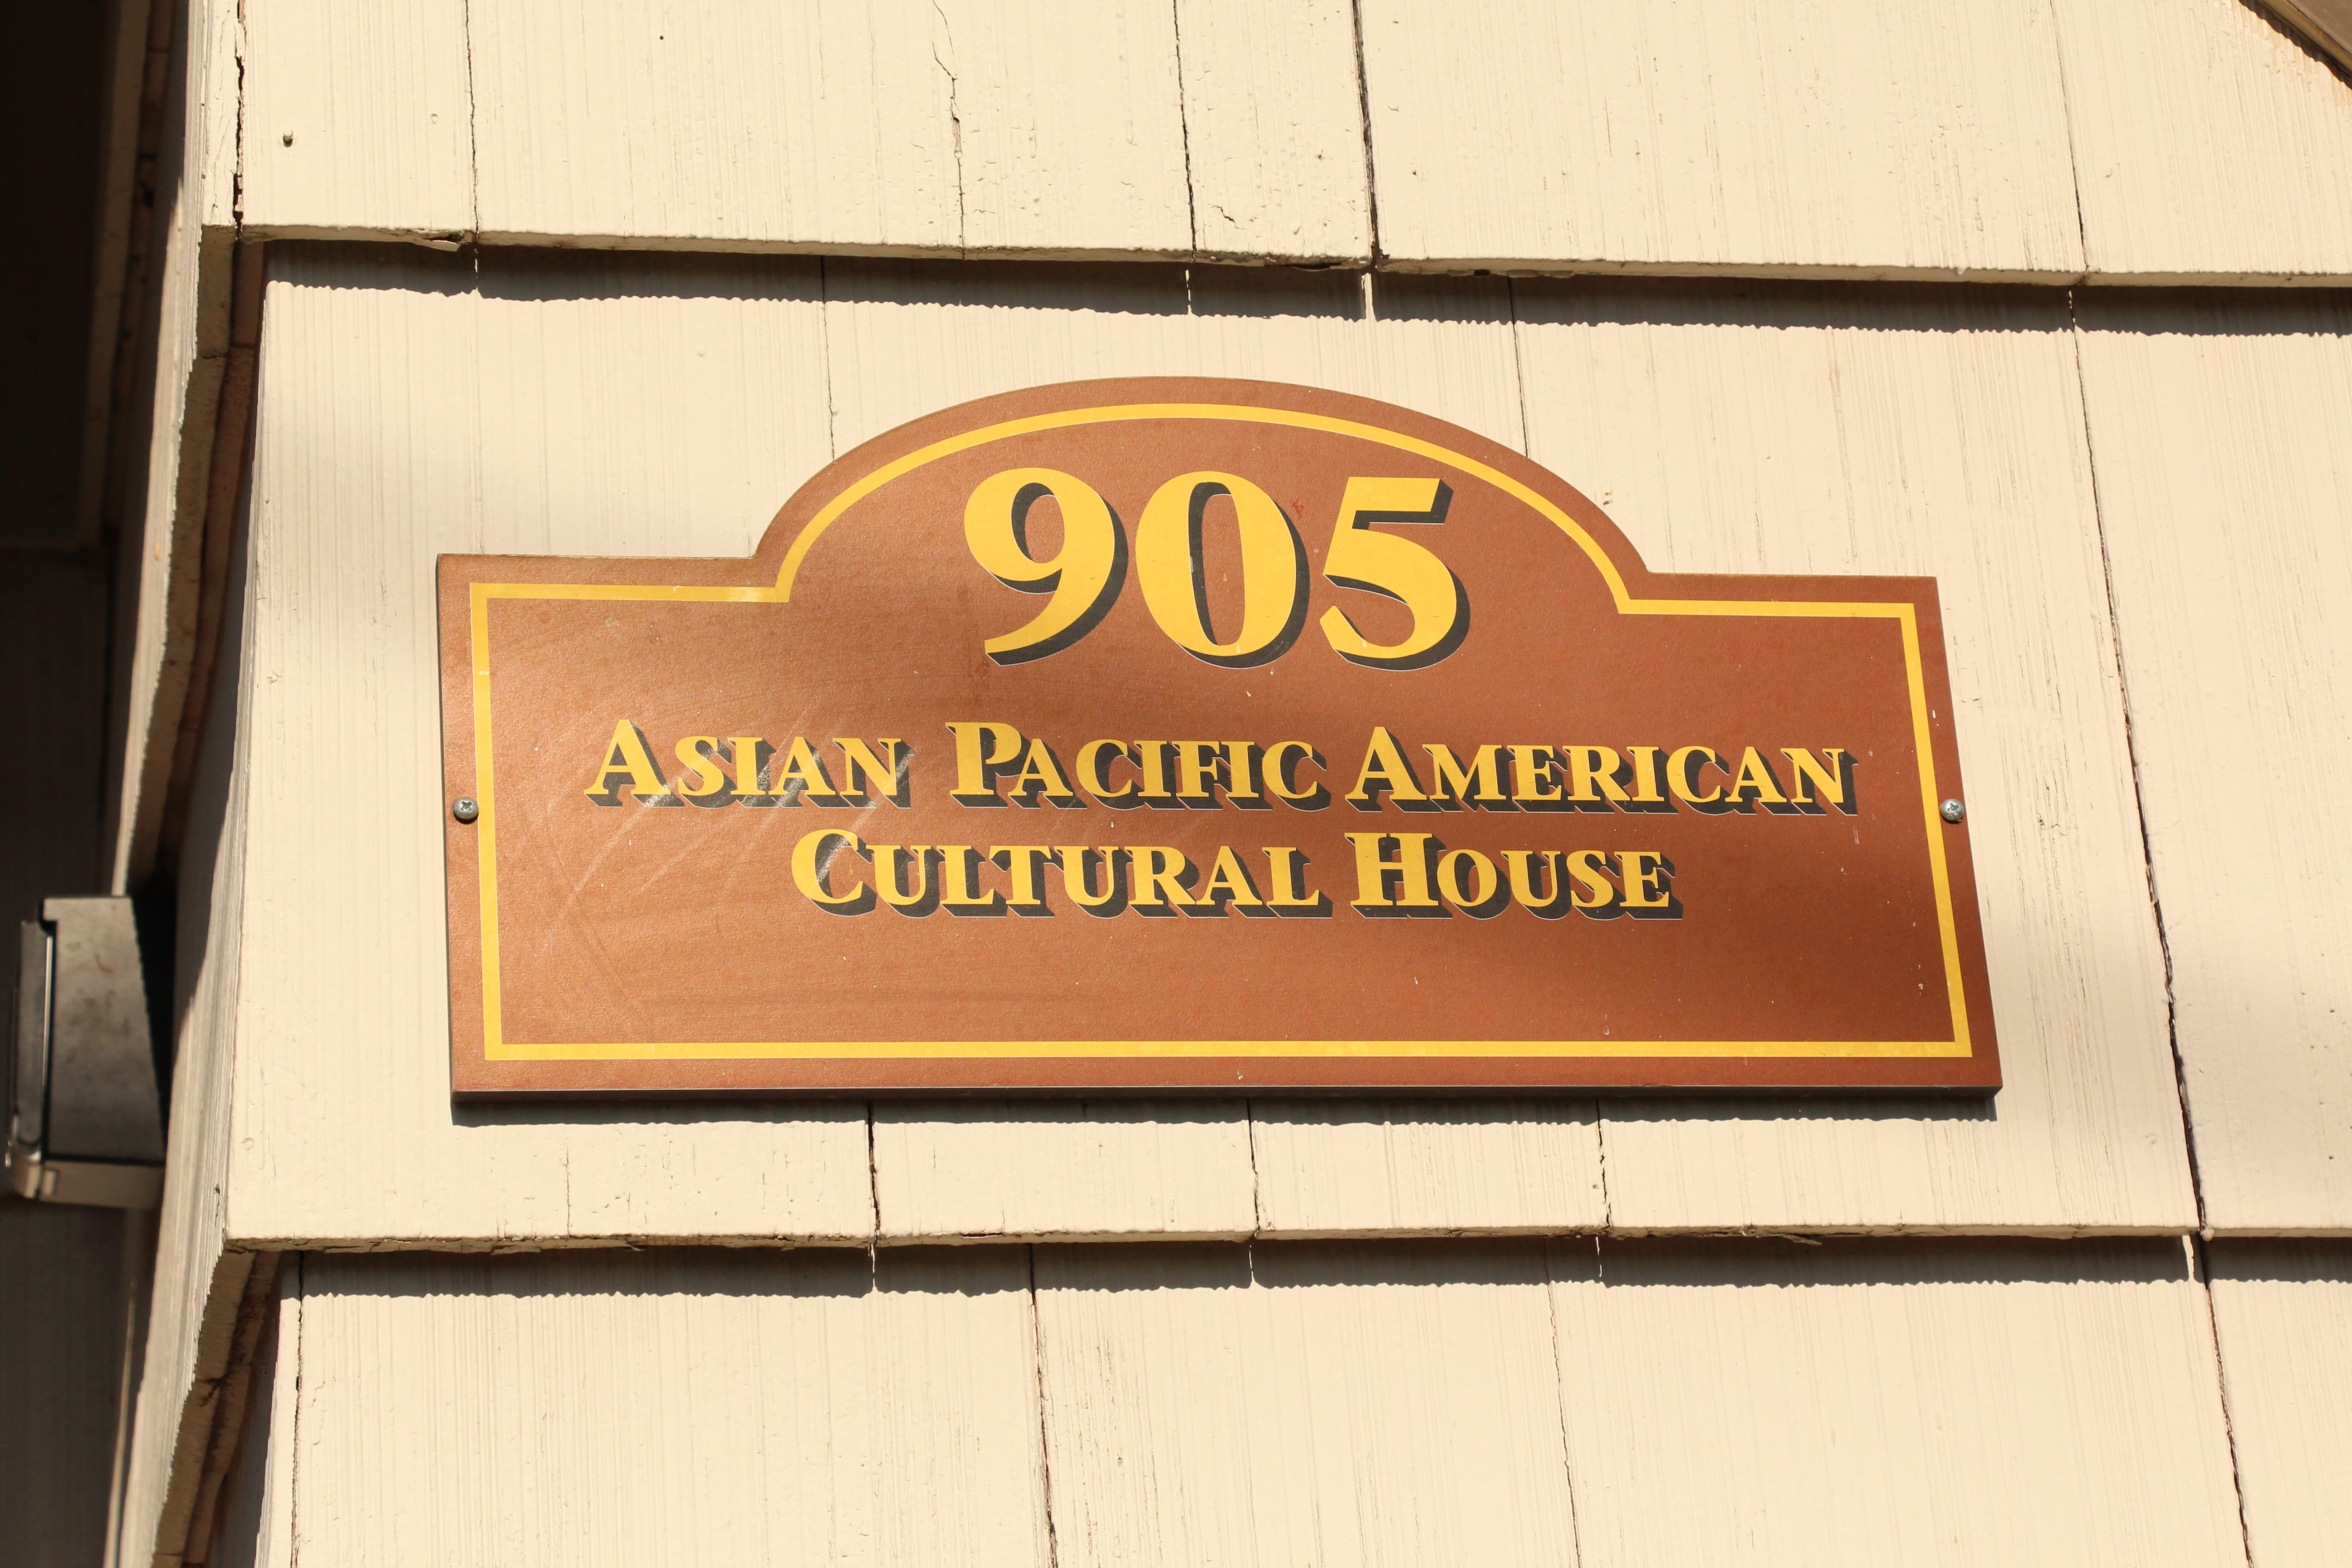 Placard for Asian Pacific American Cultural House